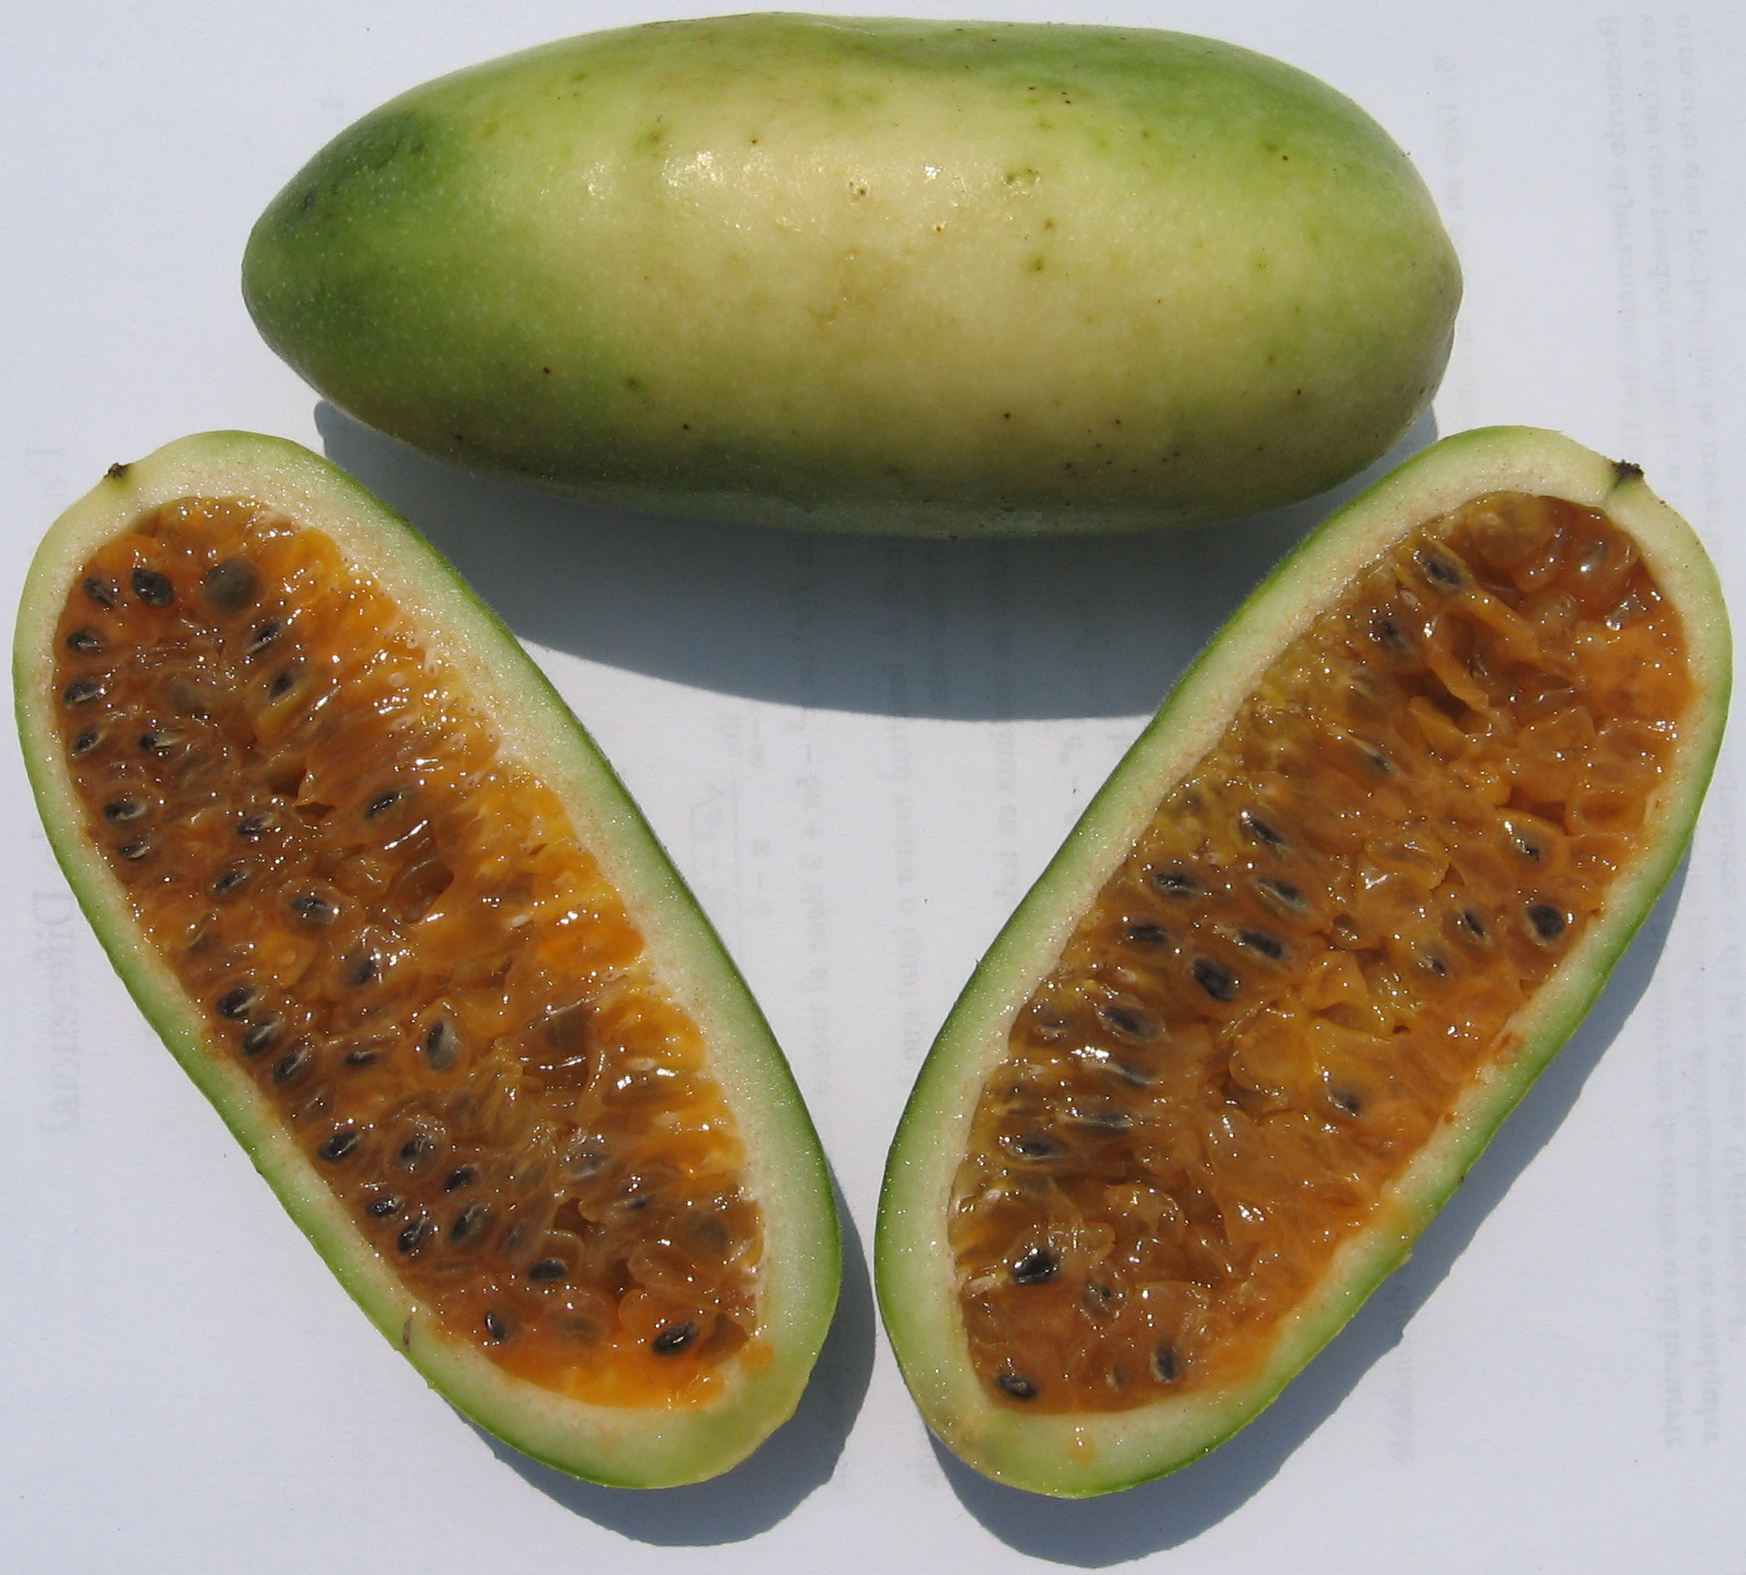 Banana Passionfruit semi